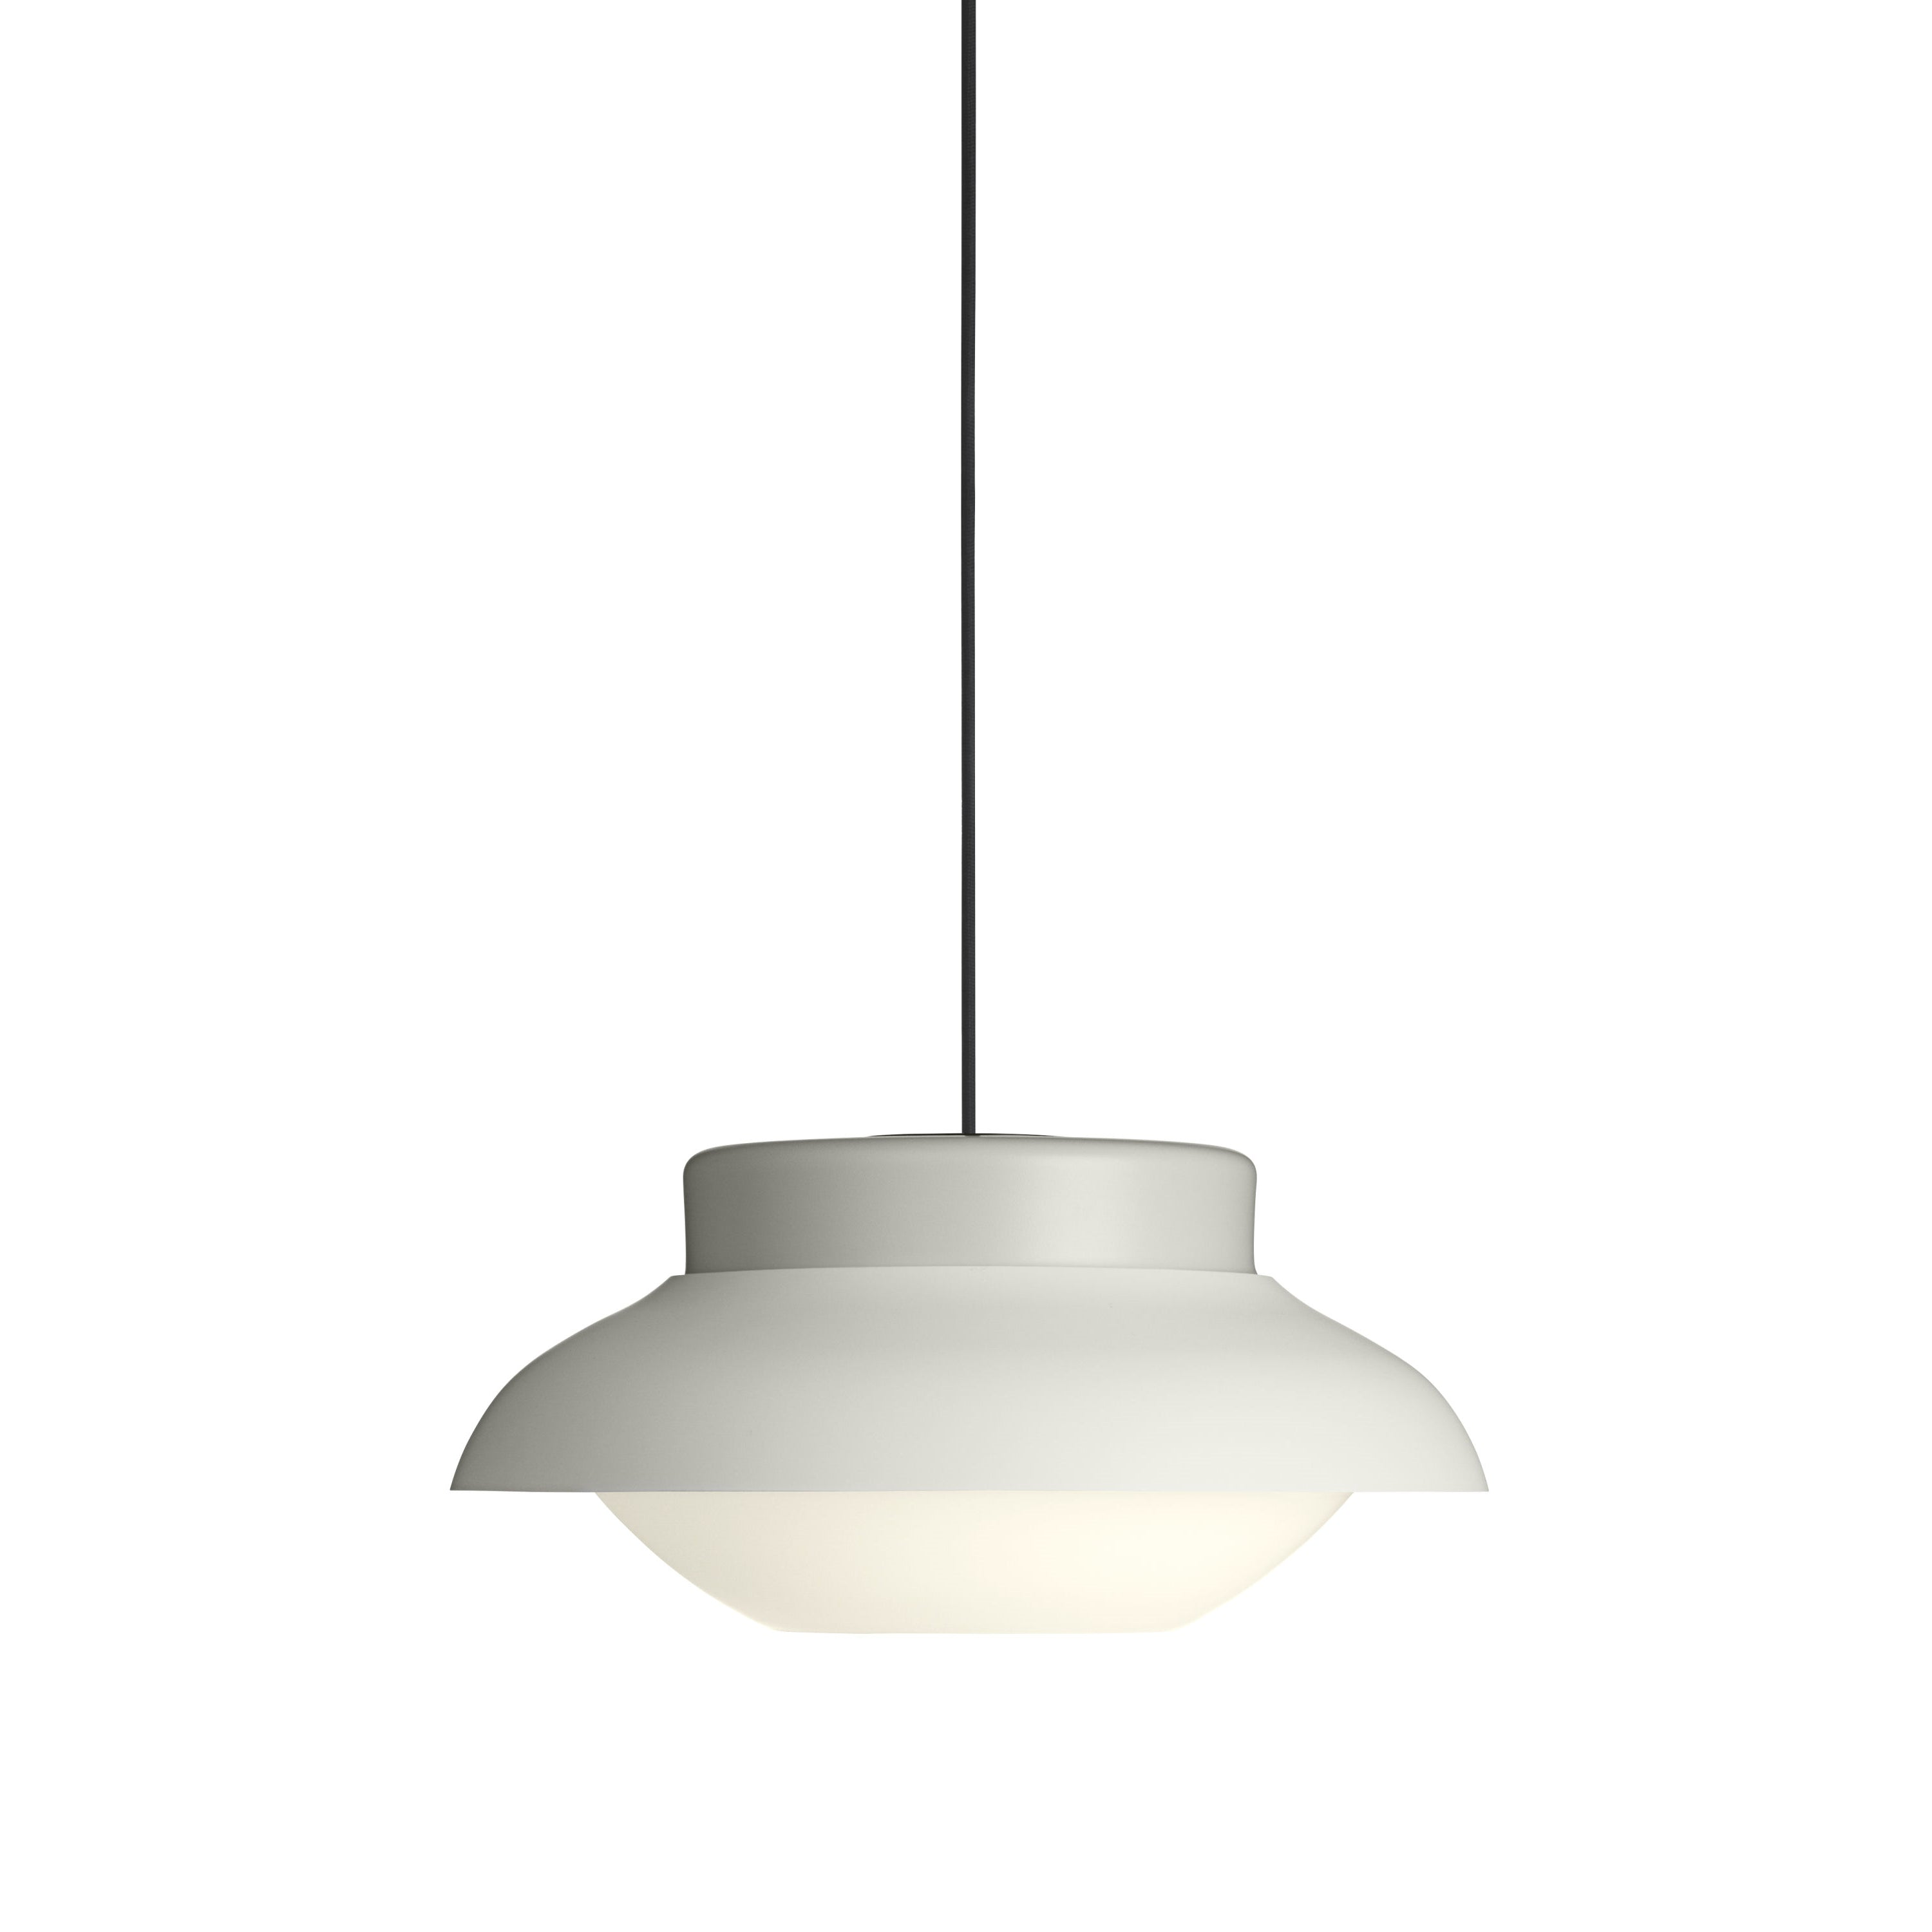 Collar Pendant Light: Large + Stone Grey